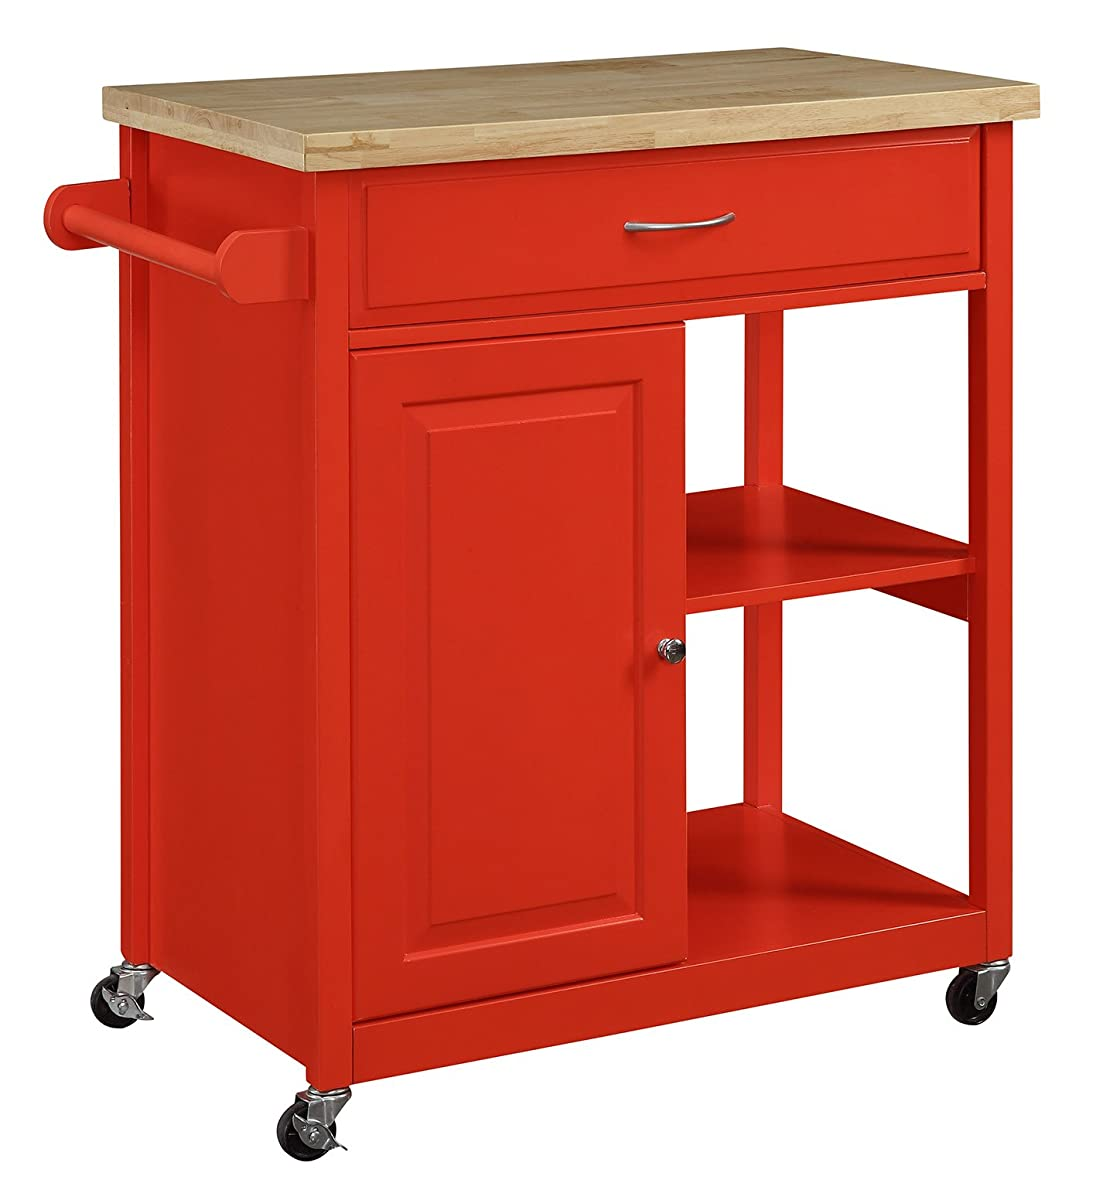 Kitchen Butcher Block Carts On Wheels : Oliver and Smith - Nashville Collection - Mobile Kitchen Island Cart on Wheels - Red - Natural ...